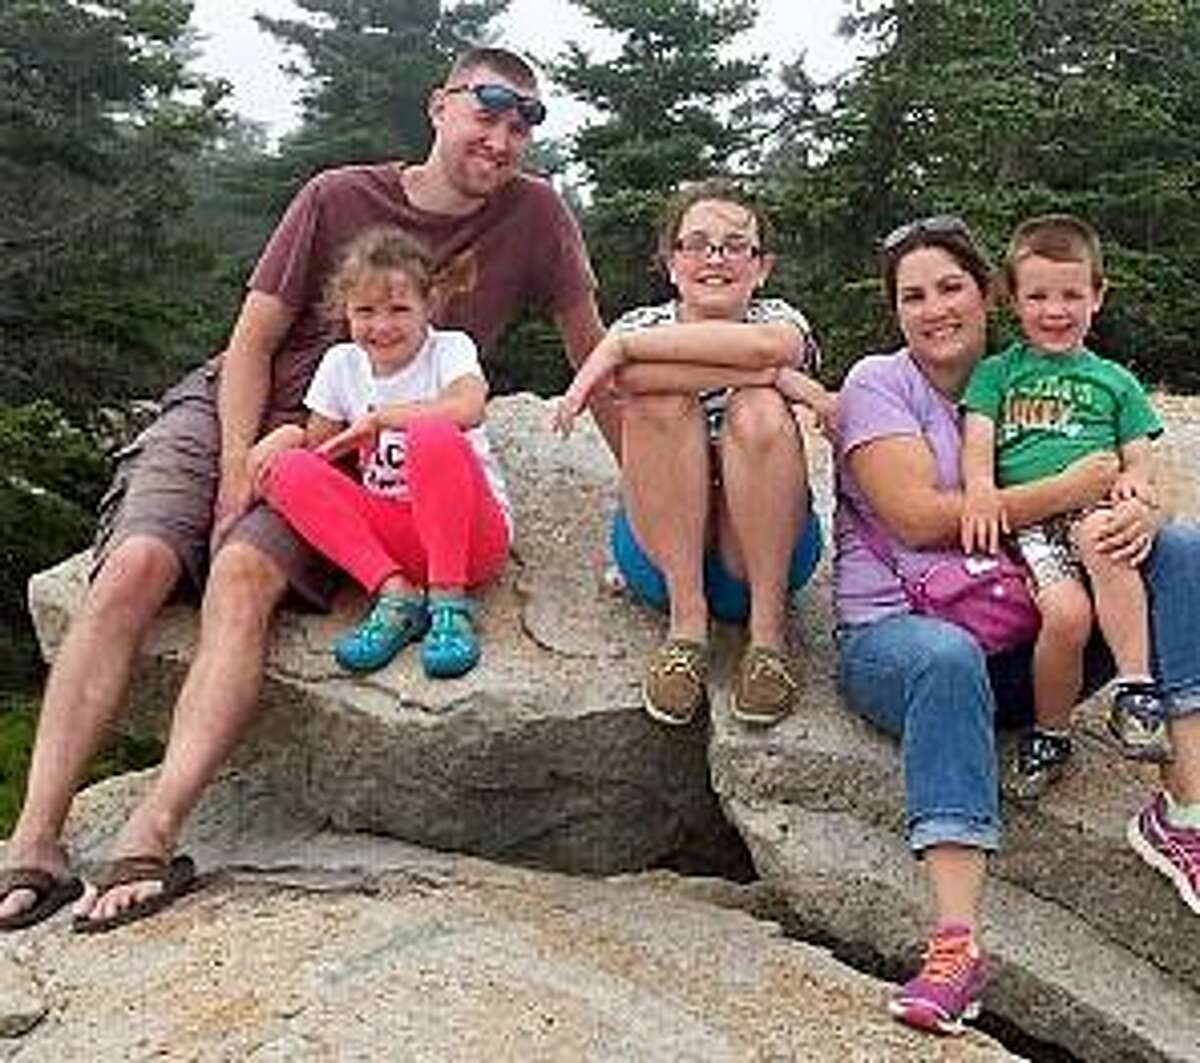 The late Danbury police Sgt. Drew Carlson with his family